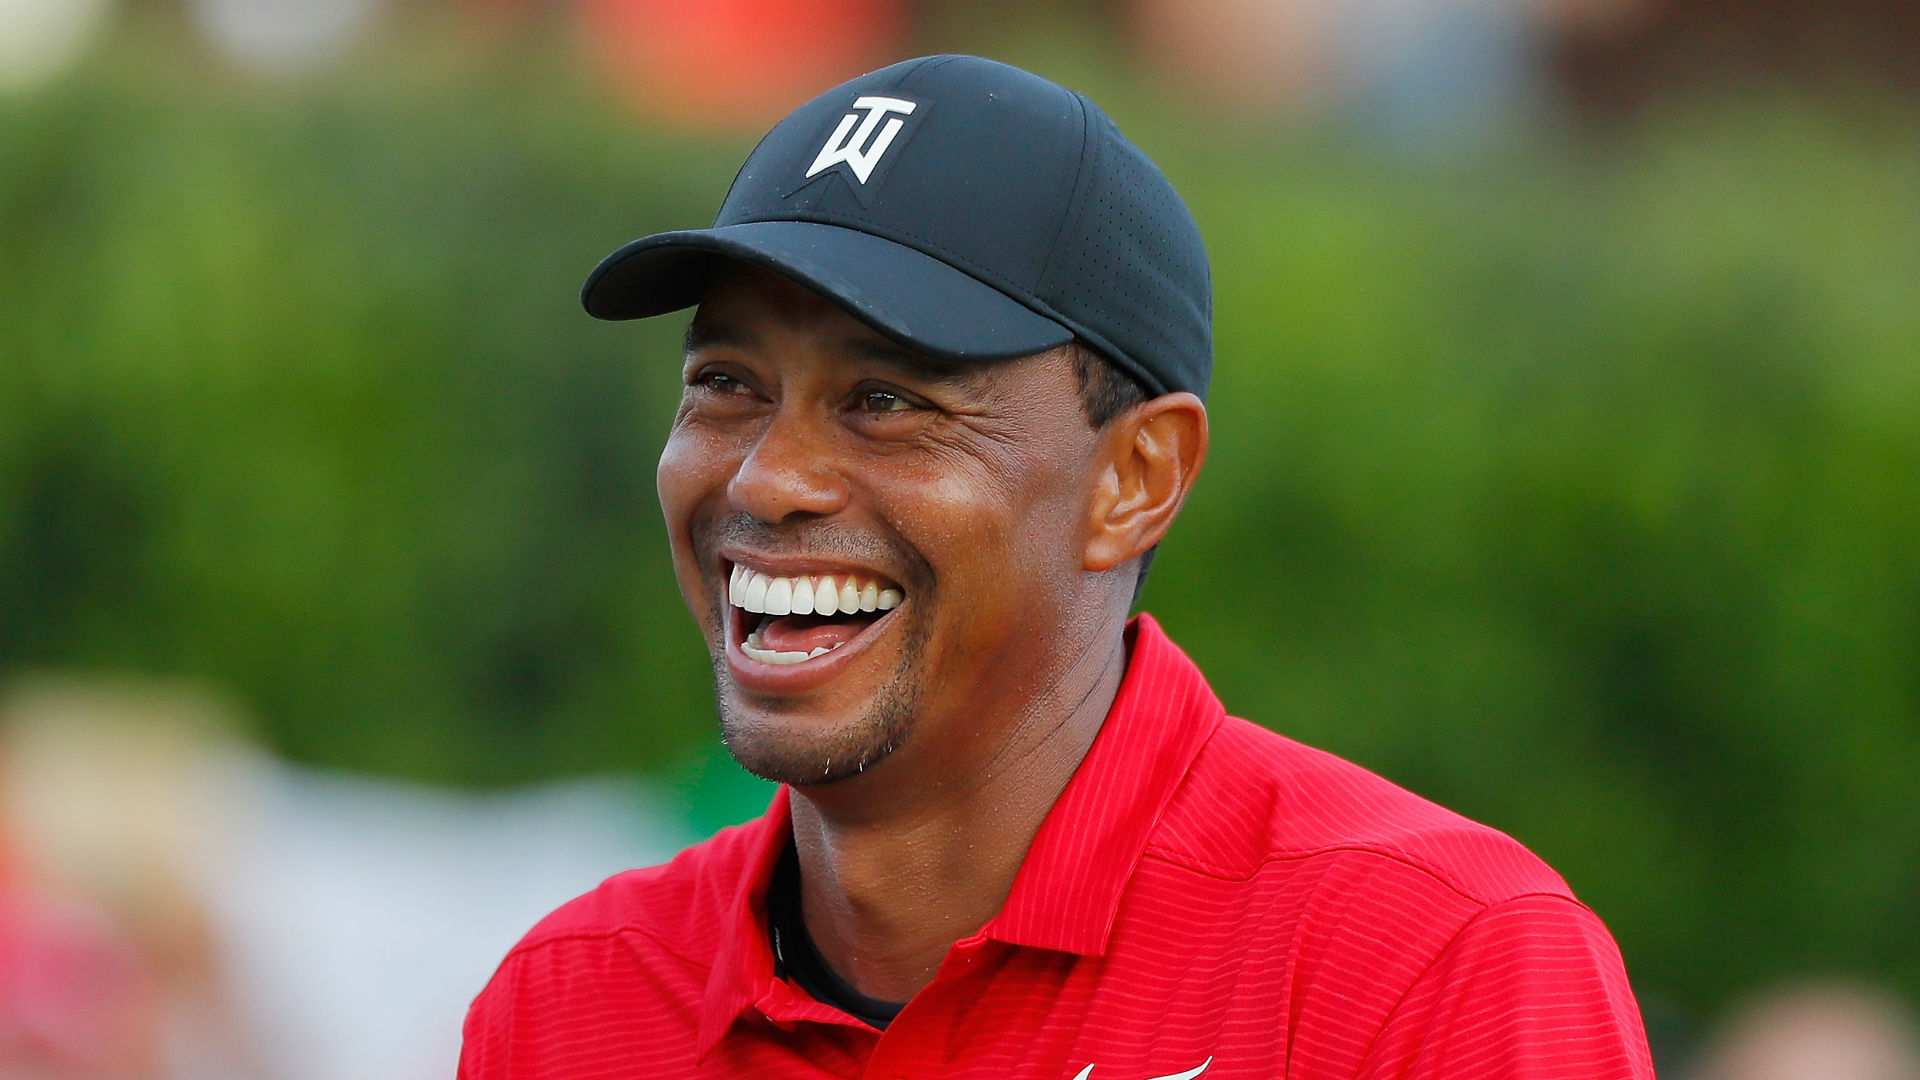 The Players Championship: Tiger Woods 'feeling good' at Sawgrass